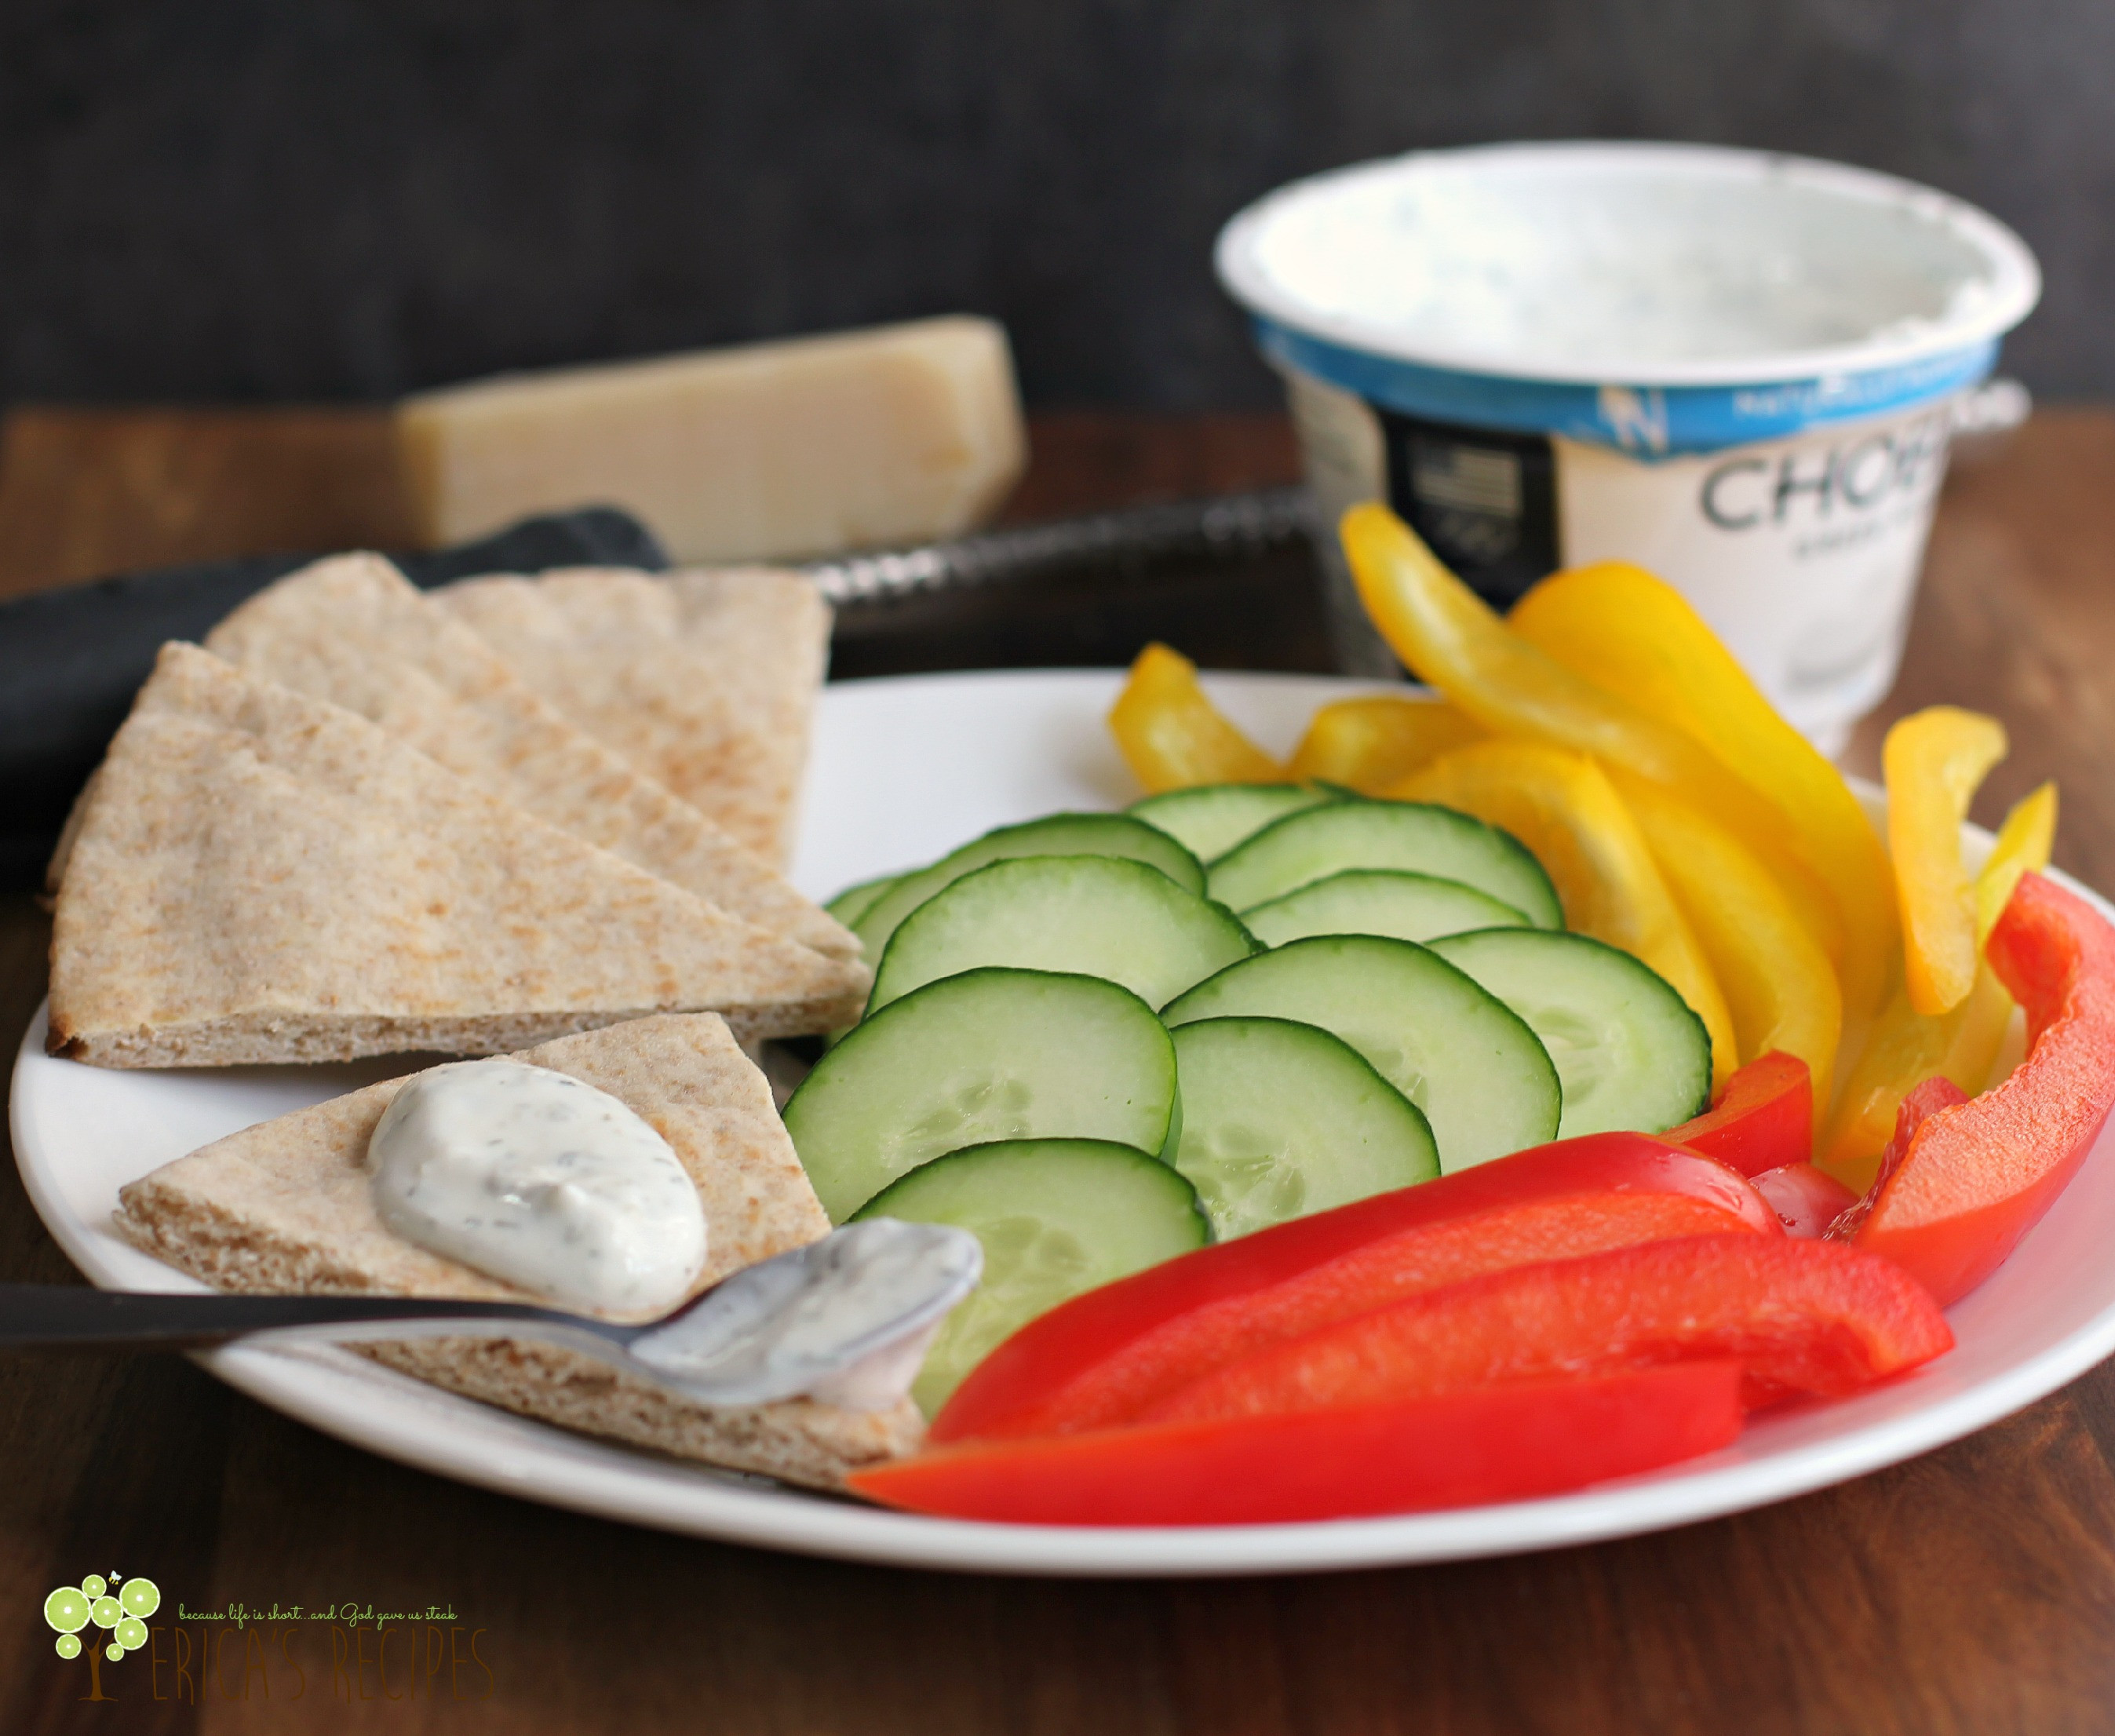 Easy Healthy Snacks For Work  10 Healthy Snack Ideas for the Workweek Erica s Recipes